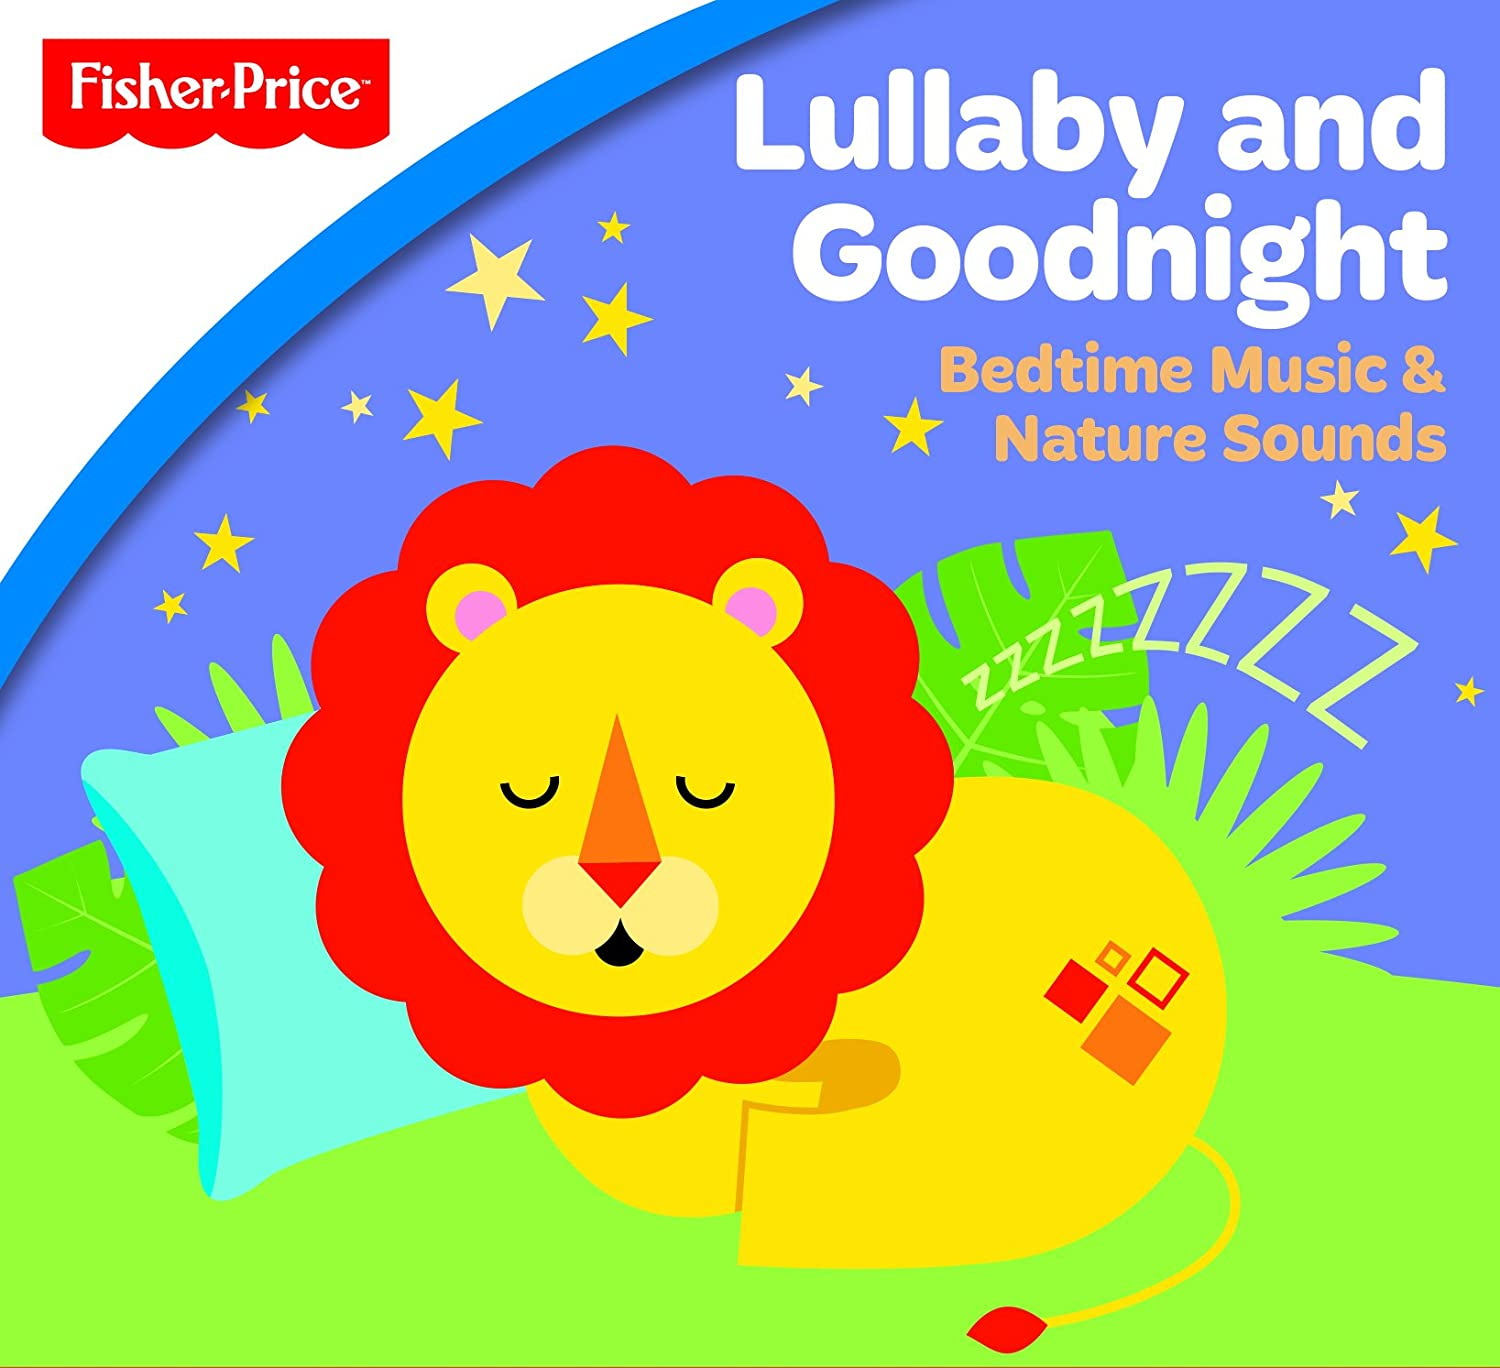 Fisher Price - Lullaby and Goodnight - Bedtime Music & Nature Sounds Kids  Music CD - Amazon.com Music